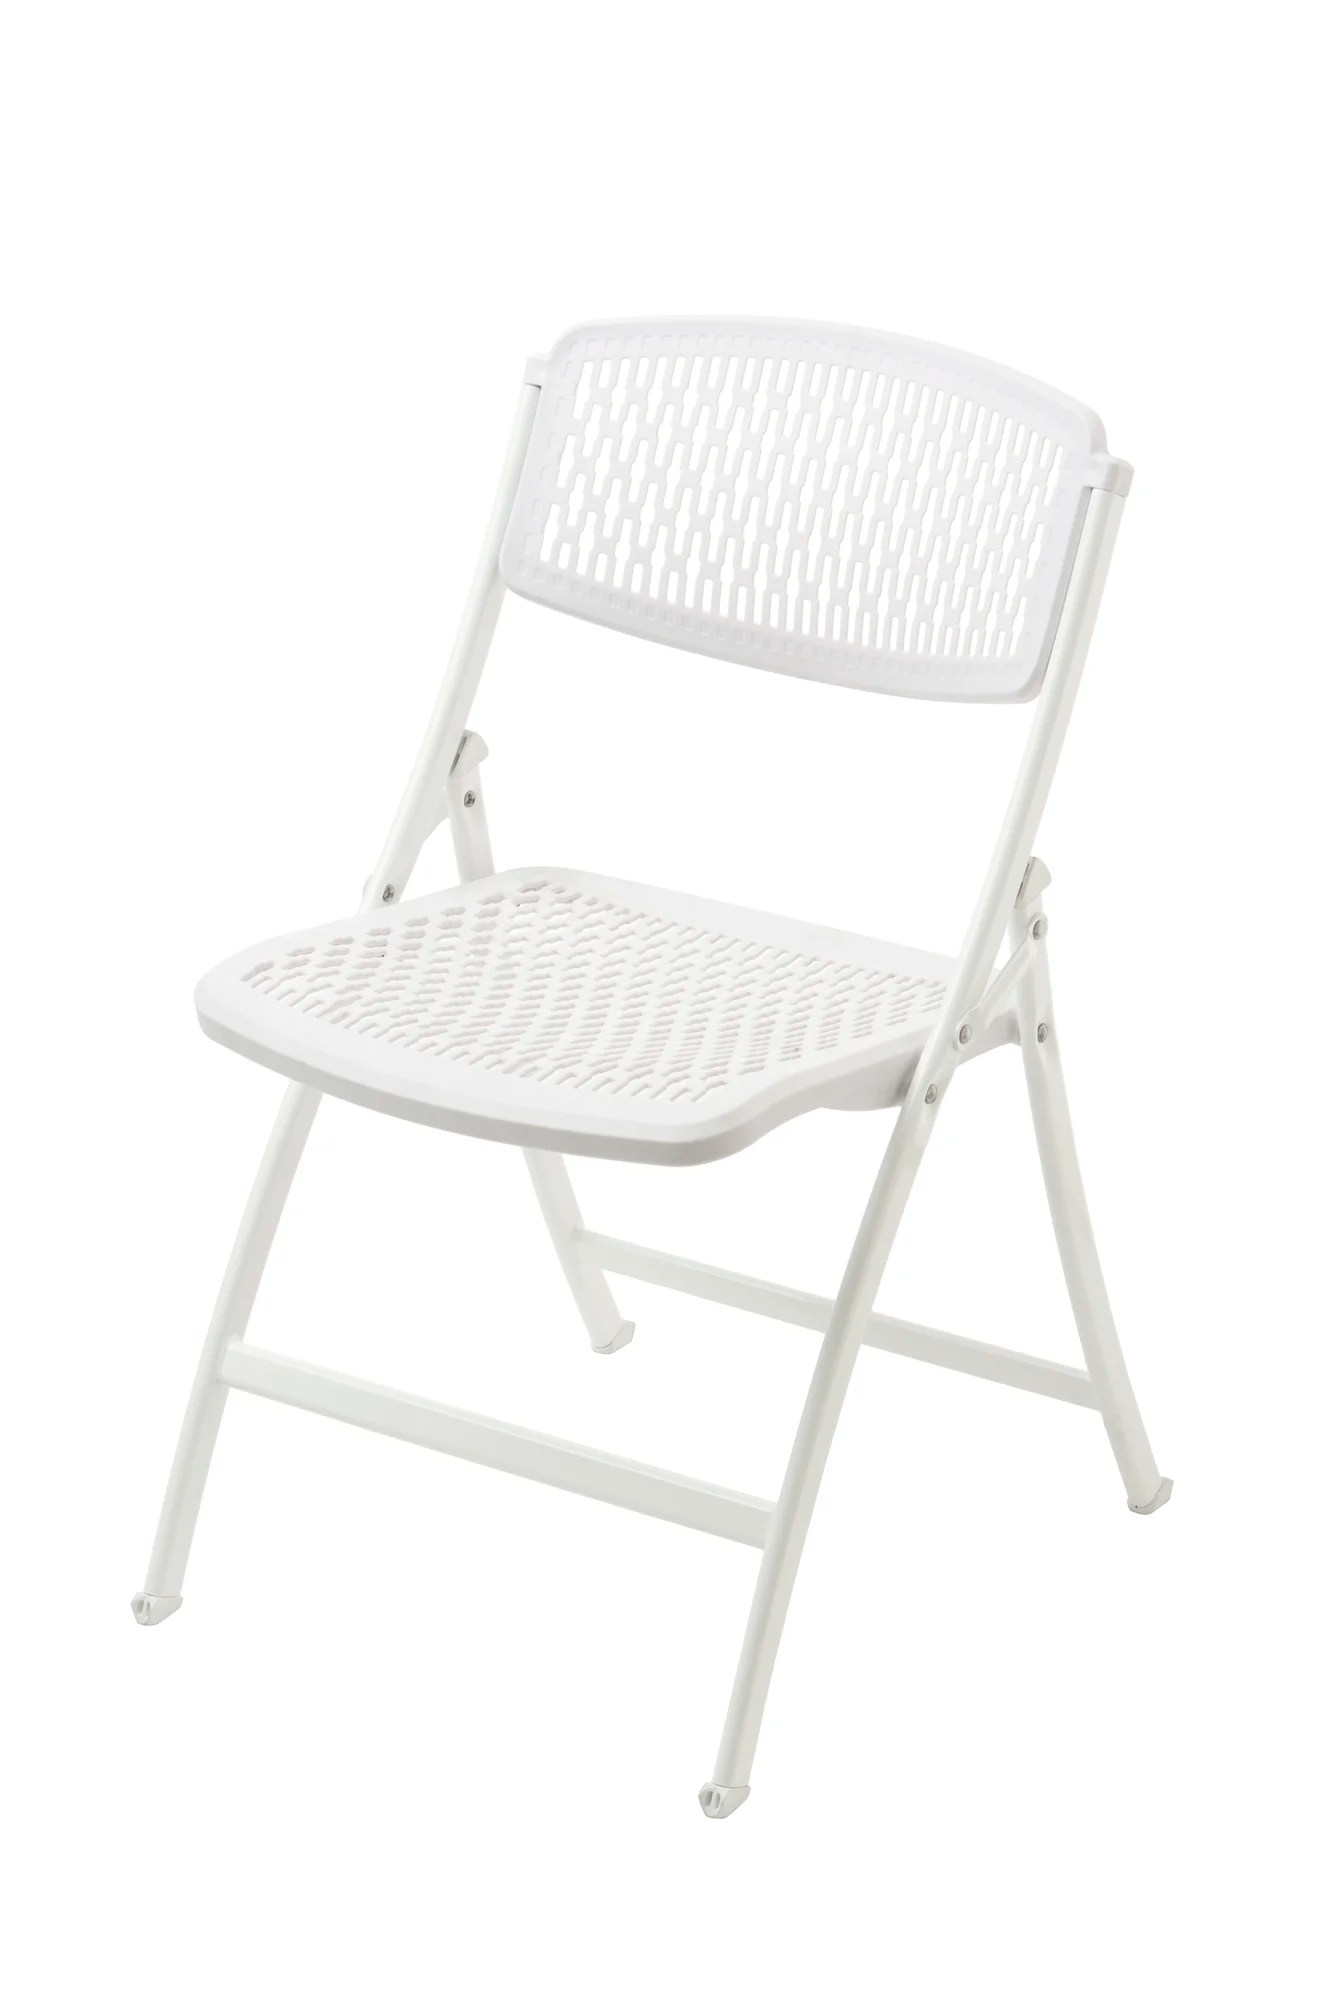 Mity Lite Flex One Folding Chair Set of 4  eBay